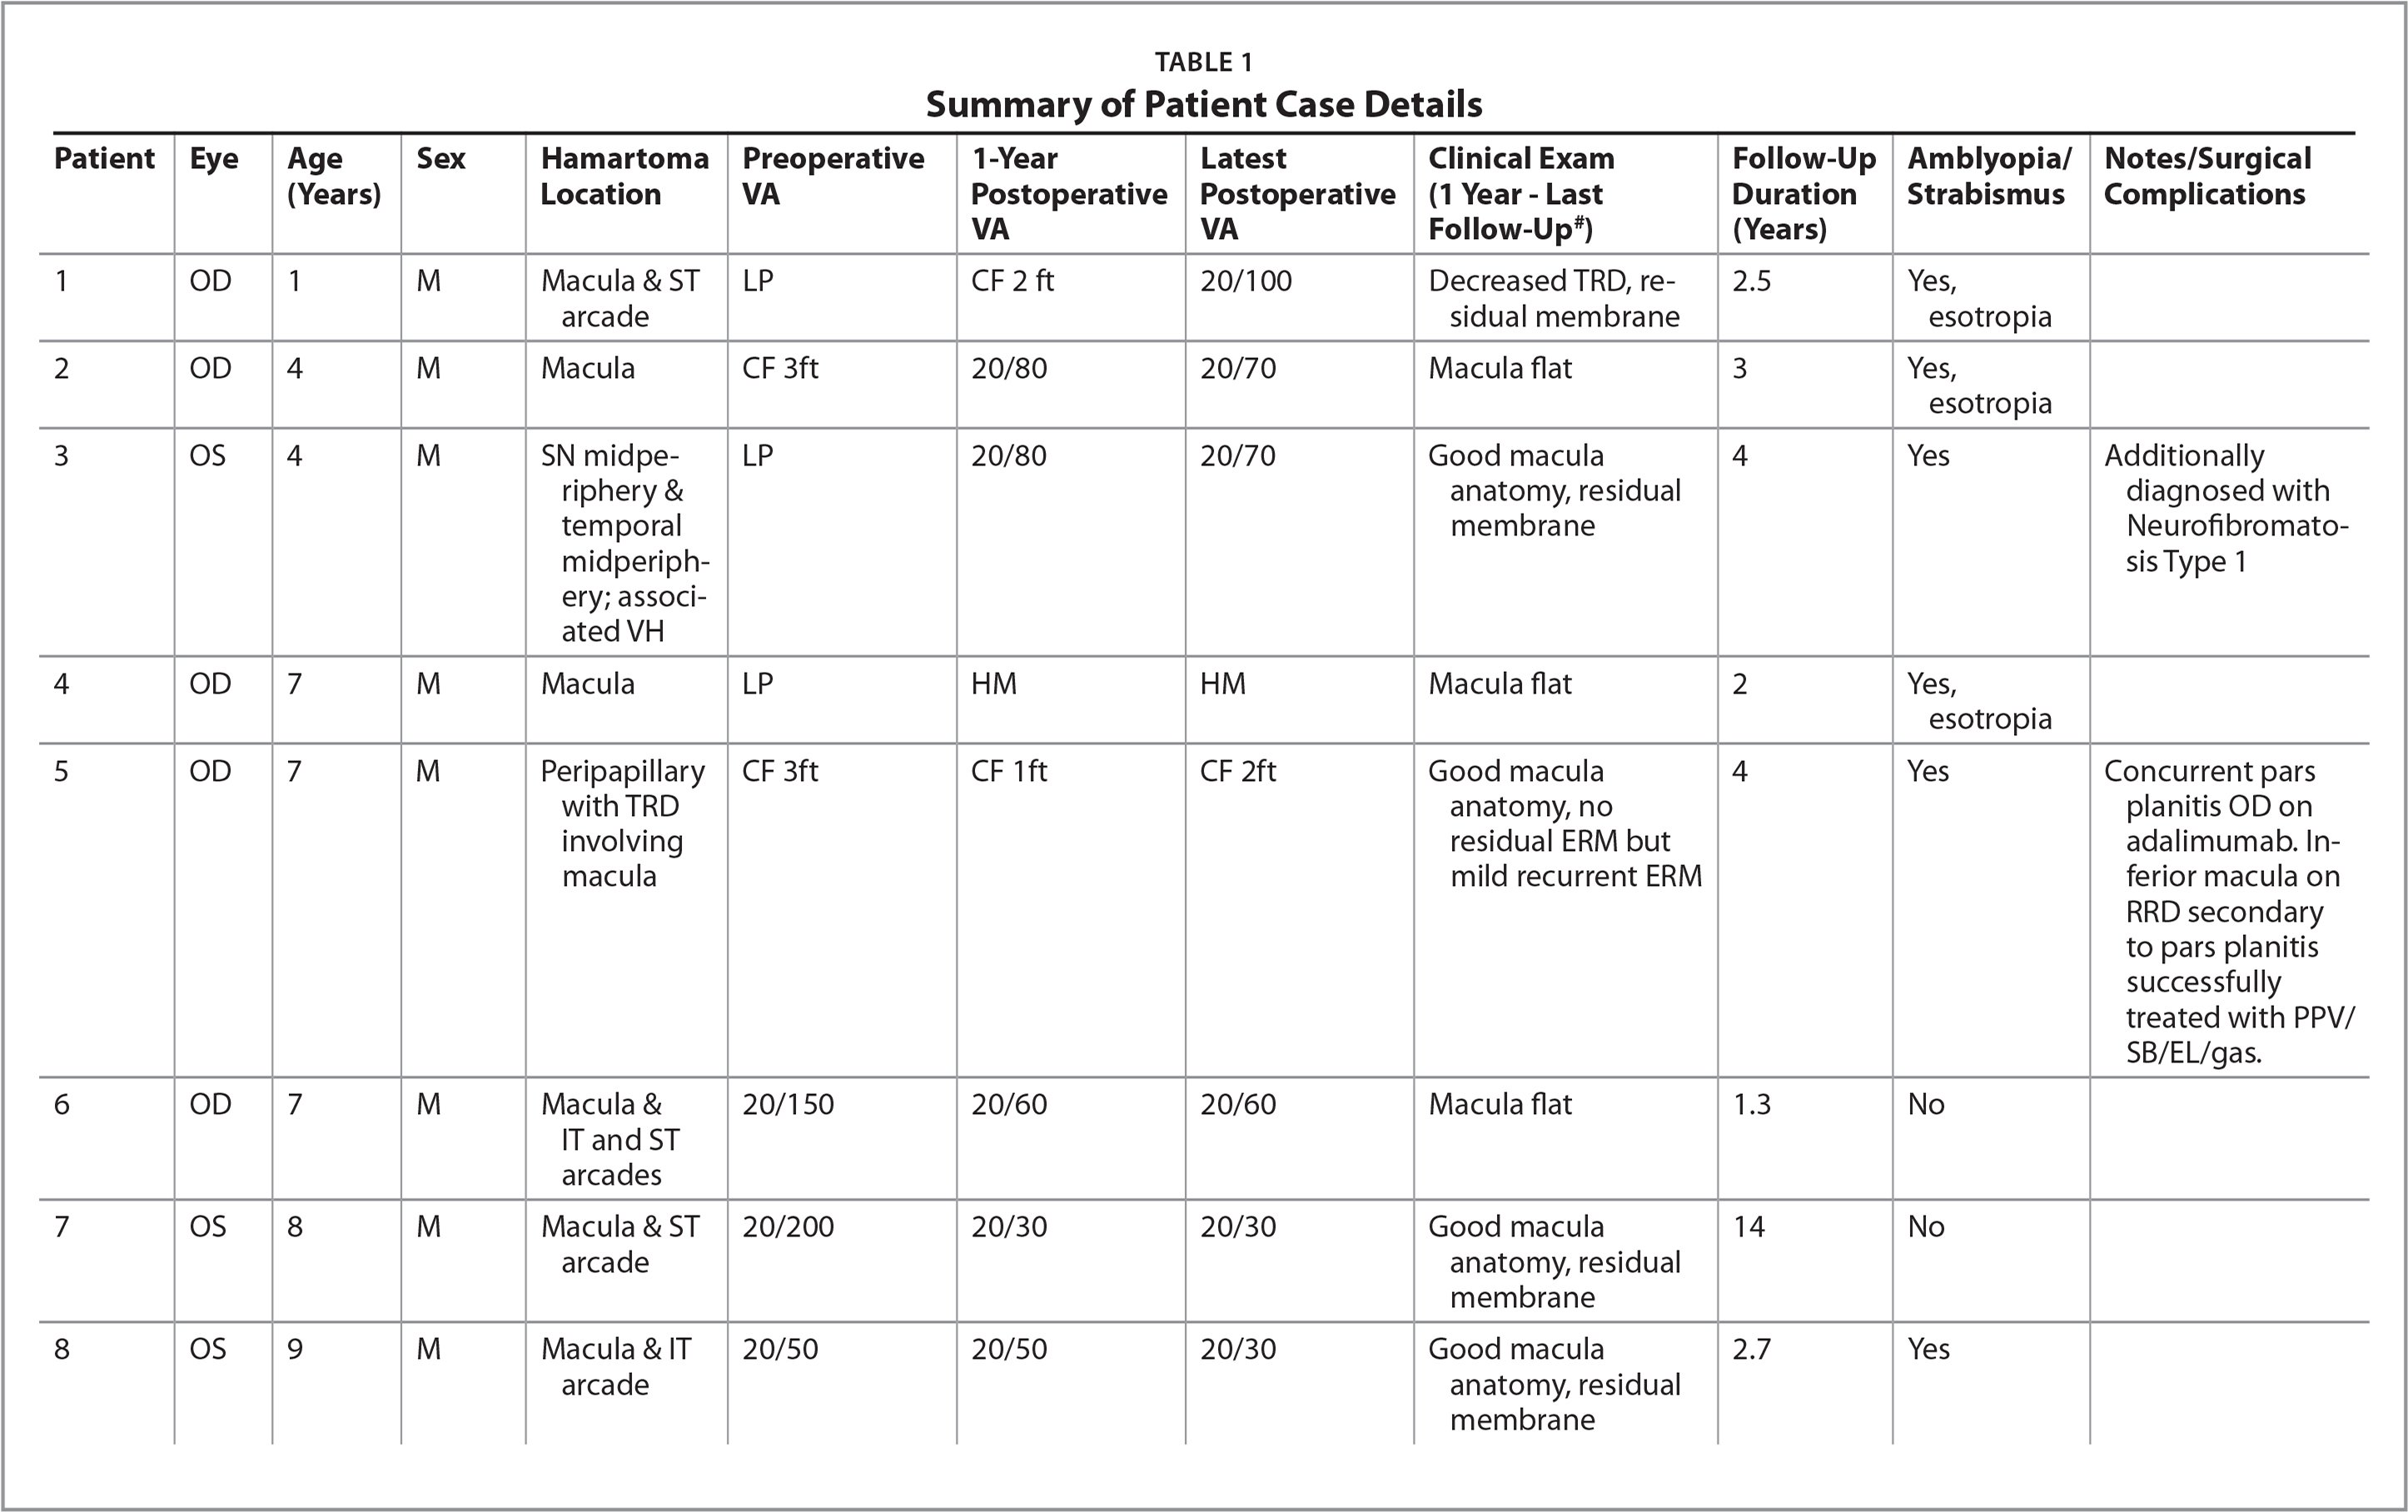 Summary of Patient Case Details